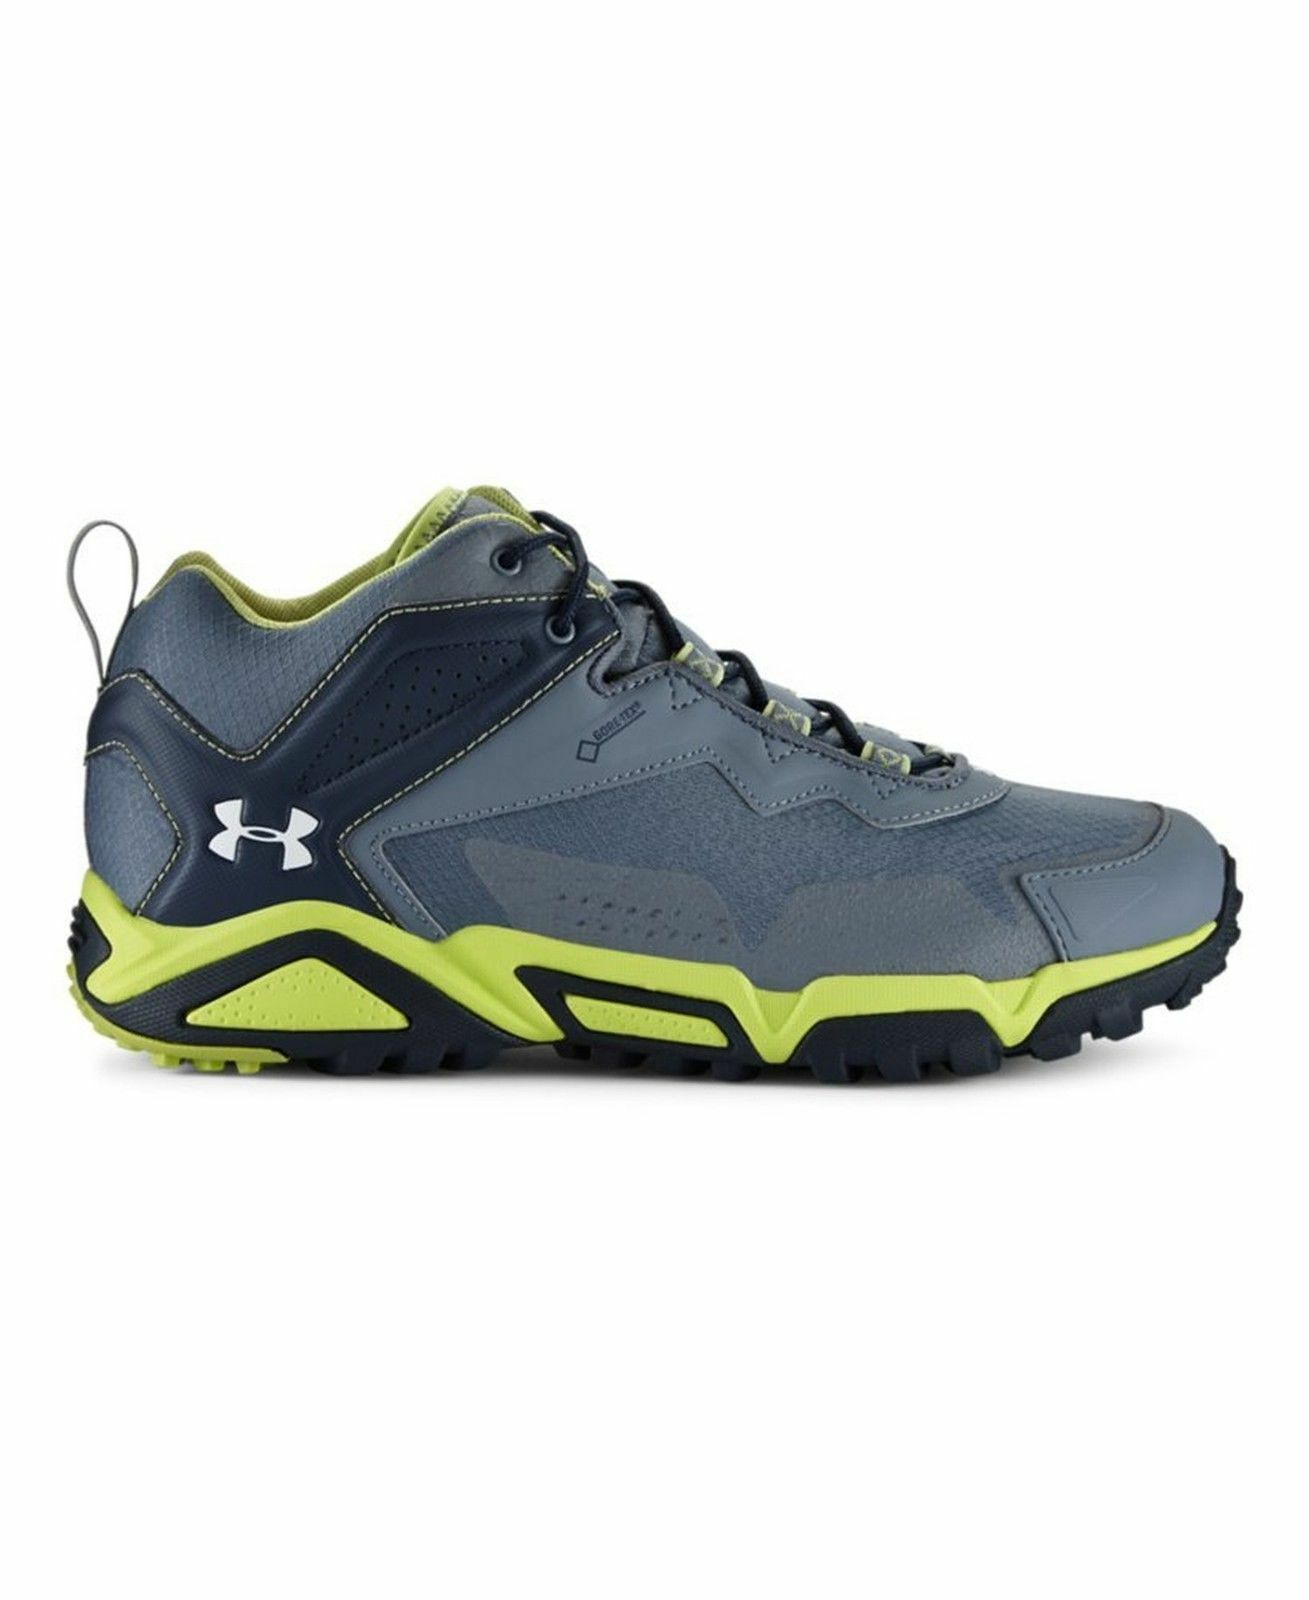 MEN TABOR RIDGE LOW UNDER ARMOUR GRAVEL/ ZOMBIE GREEN/ IVORY 9